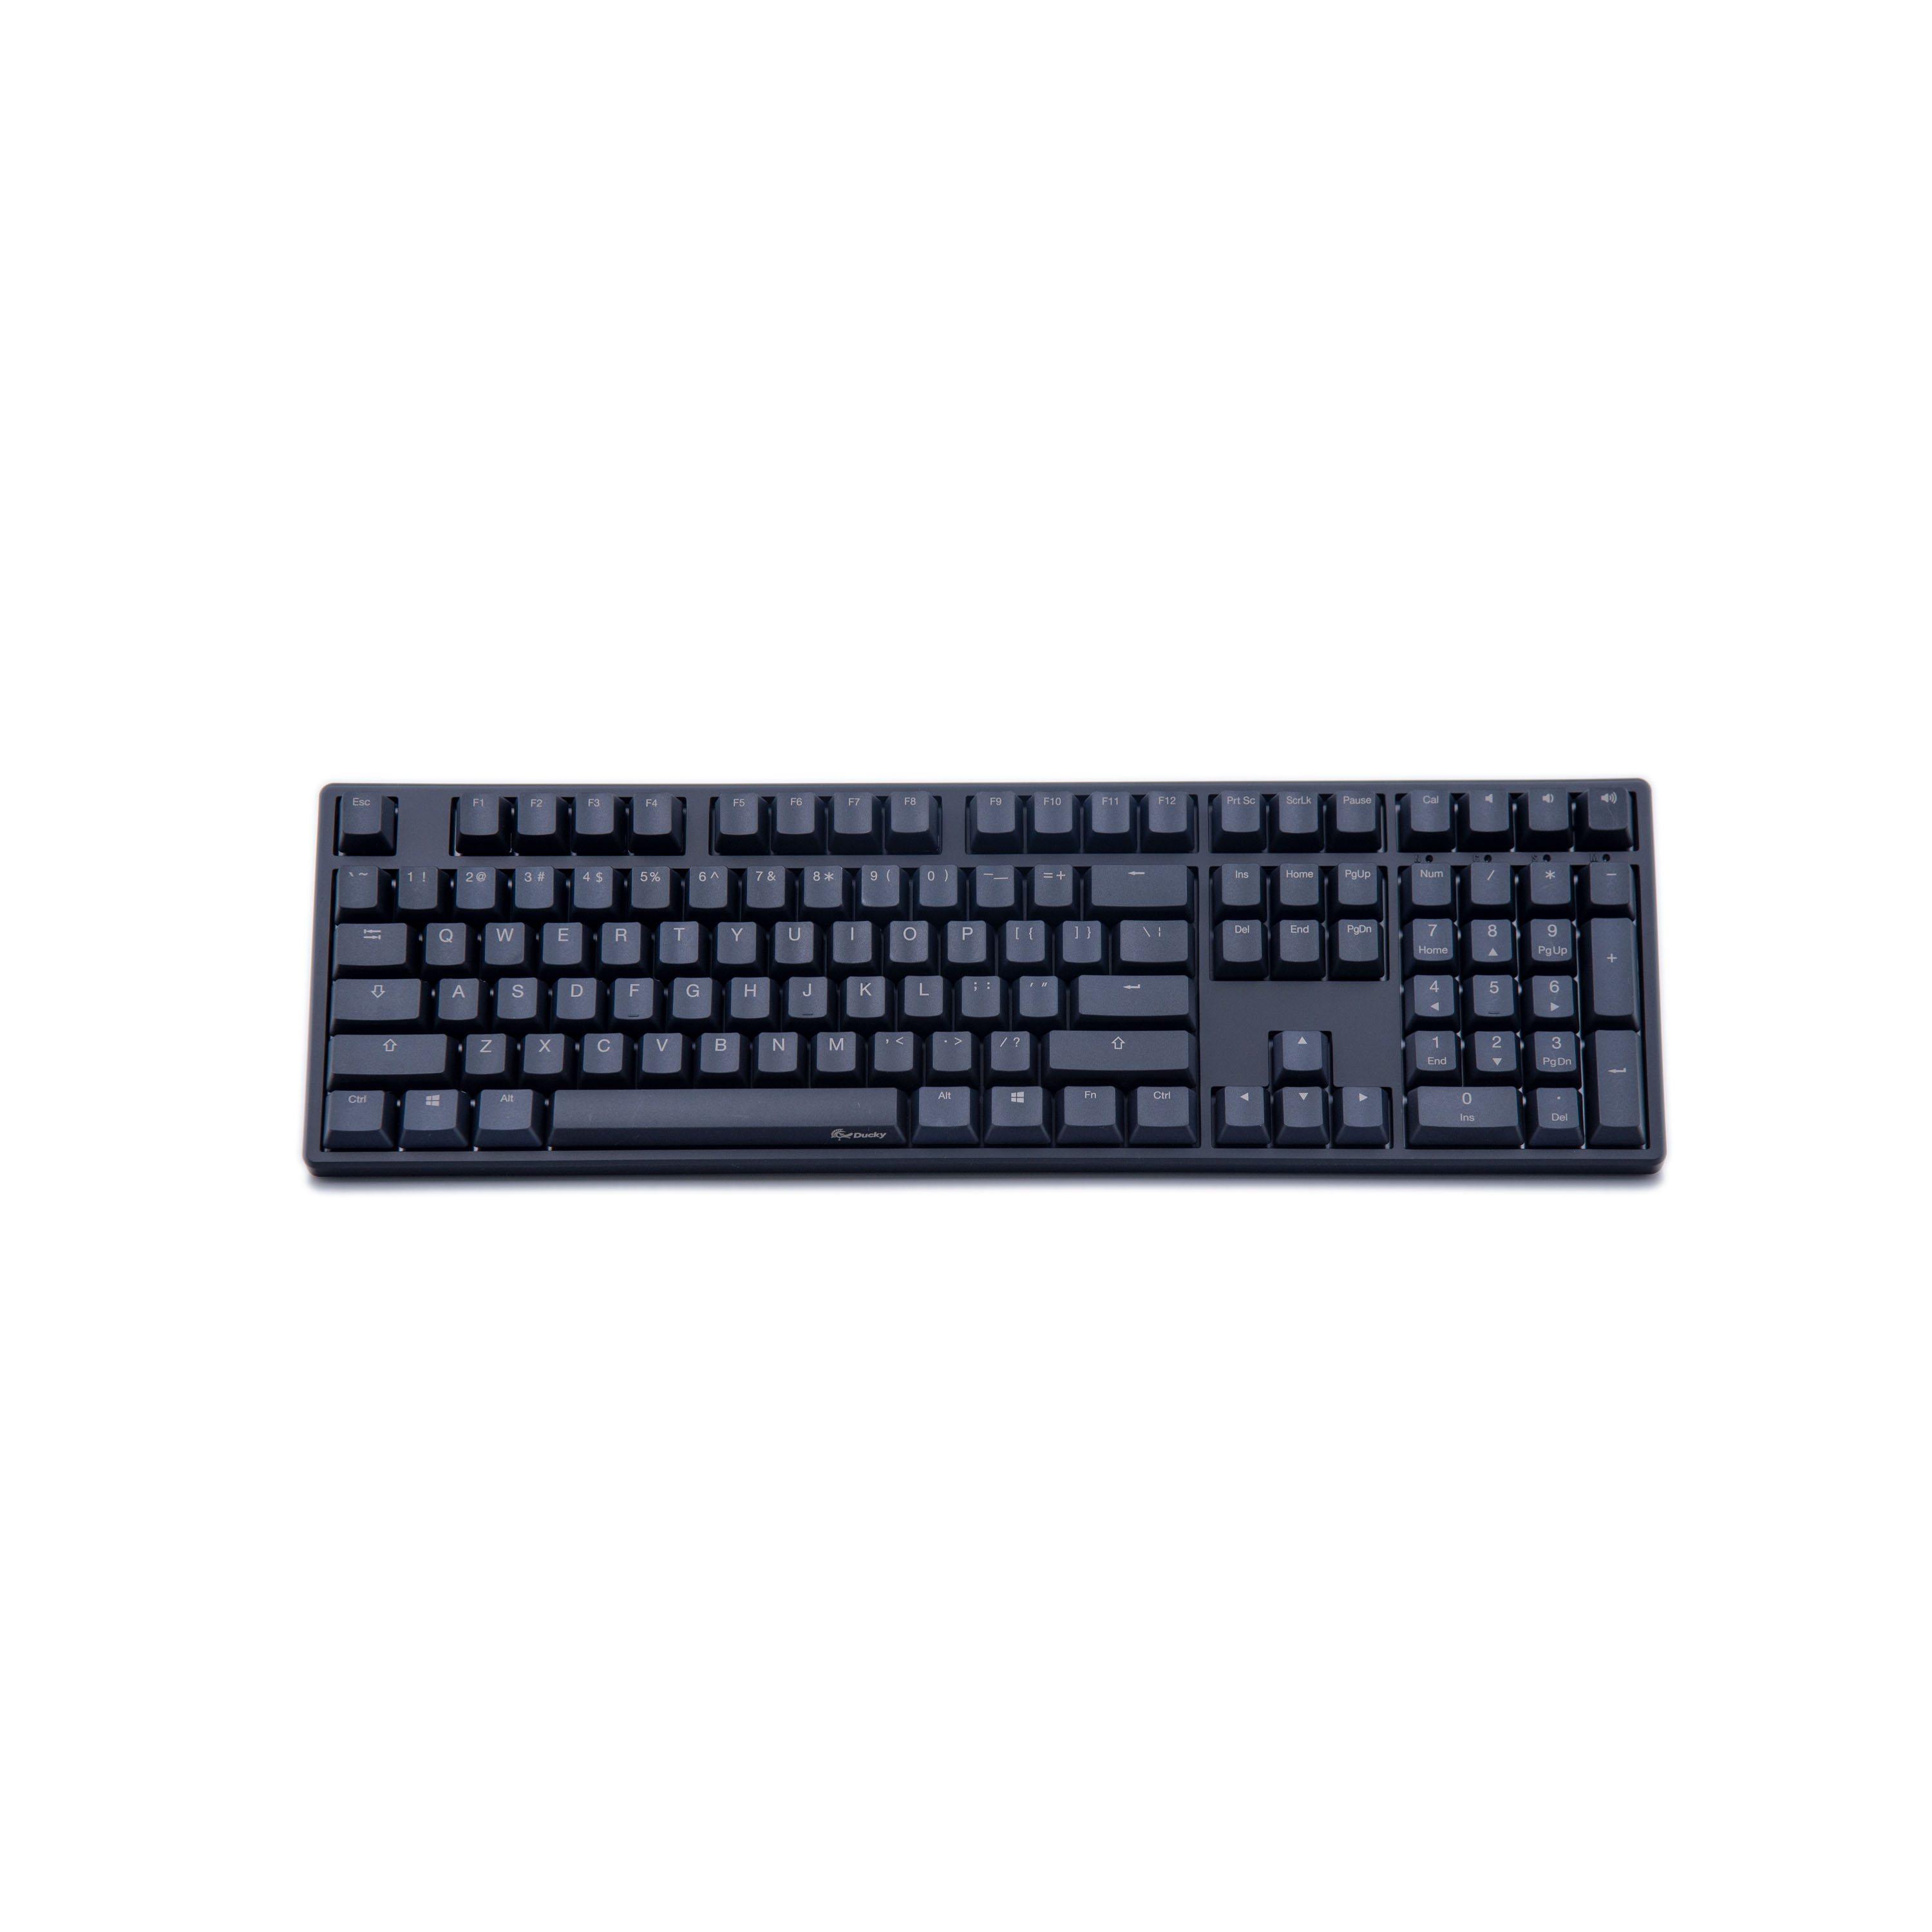 Image of Ducky One DKON1608 Cherry MX Brown Non-Backlit Mechanical Keyboard DKON1608-BHKPLAAB1 - Black (US Layout)